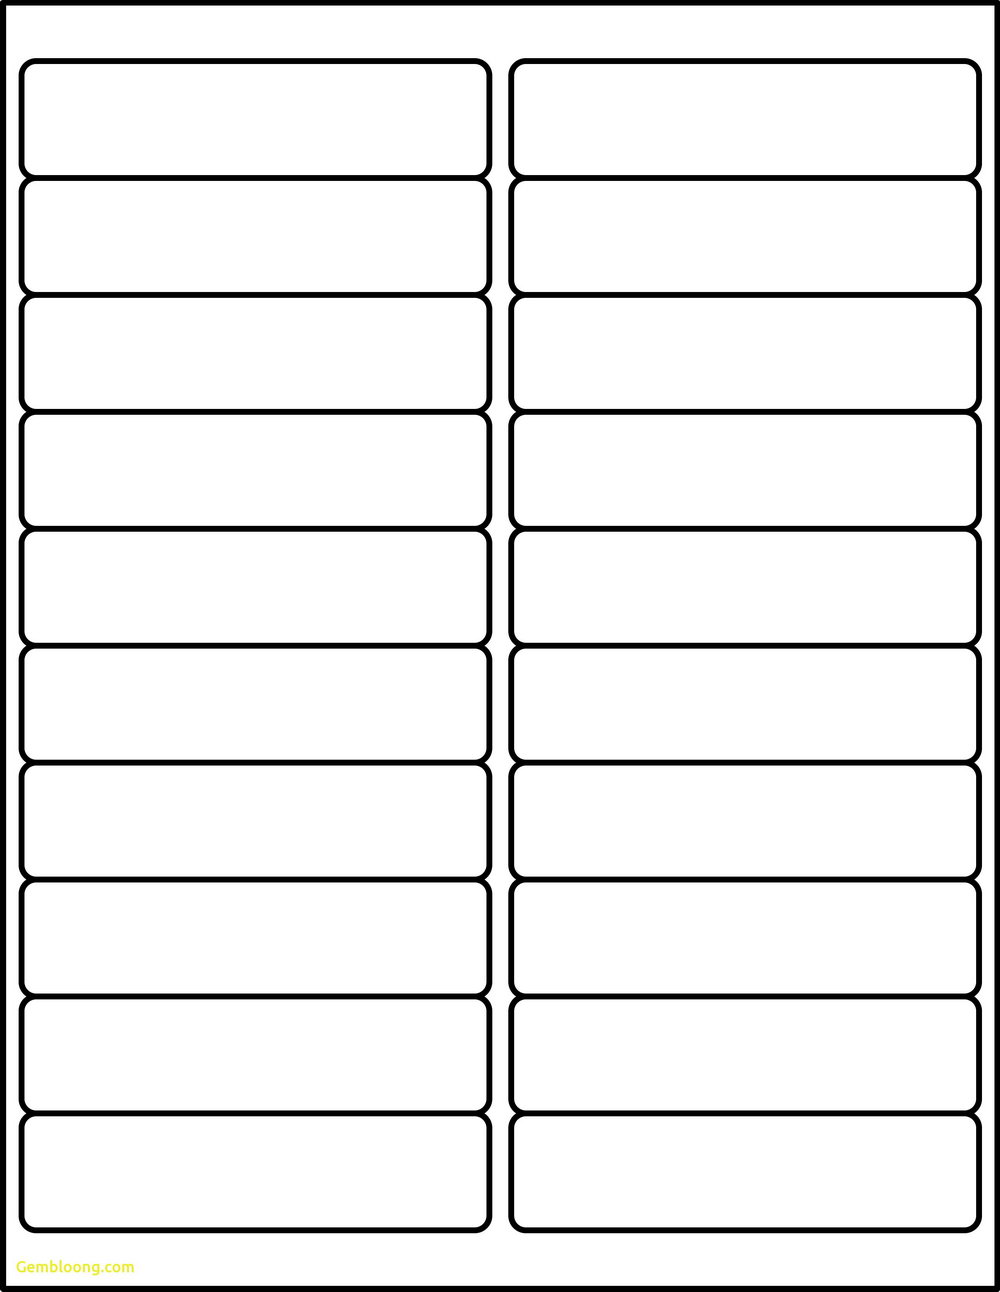 Avery Labels 5163 Template